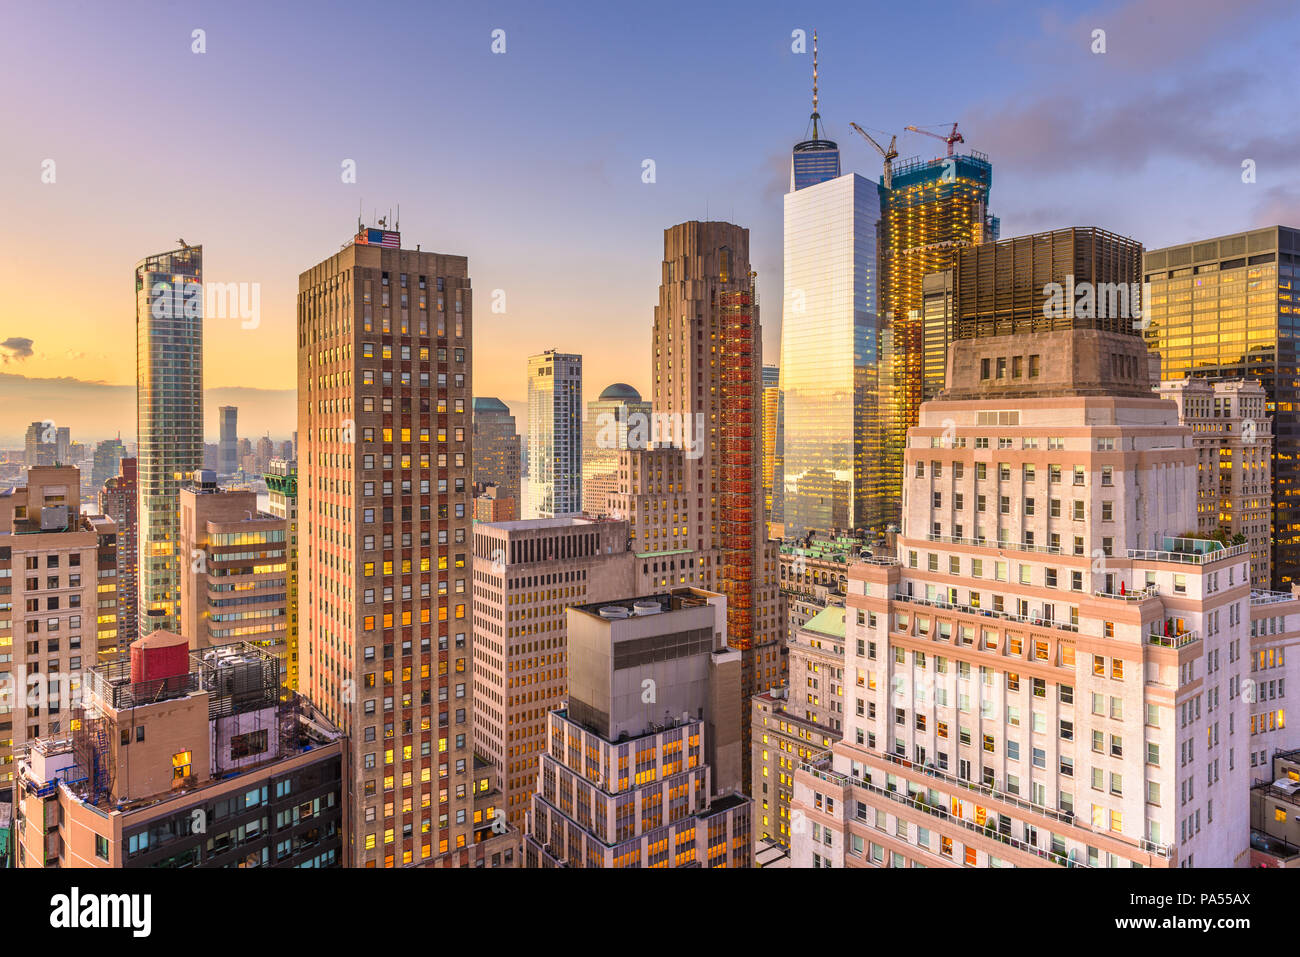 New York, New York, USA Lower Manhattan Financial District cityscape from above at twilight. - Stock Image